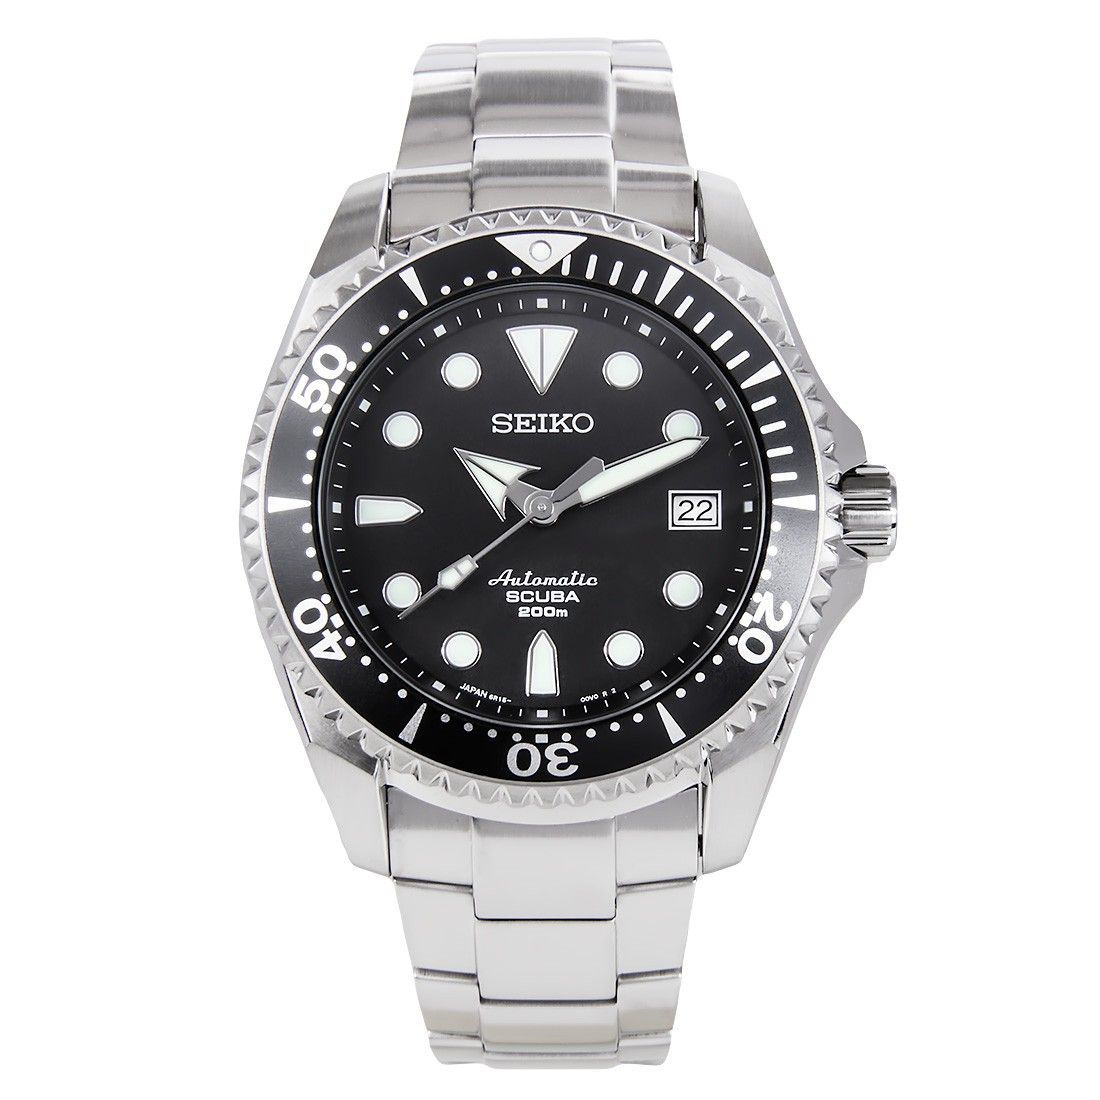 Seiko Sumo Shogun Automatic Scuba Diver Black Dial Watch